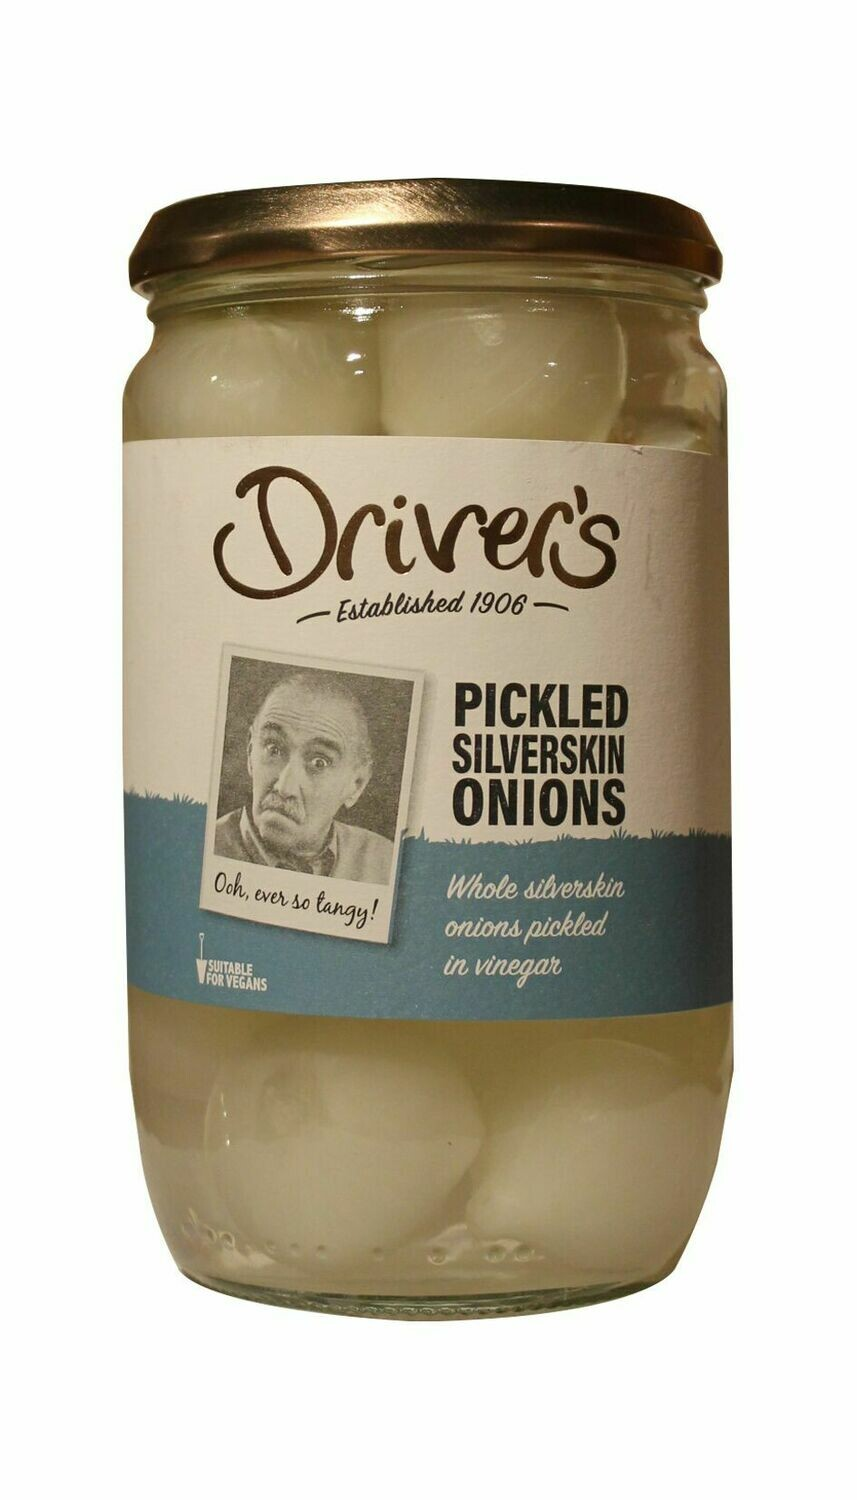 Drivers Pickled Silverskin Onions 710g